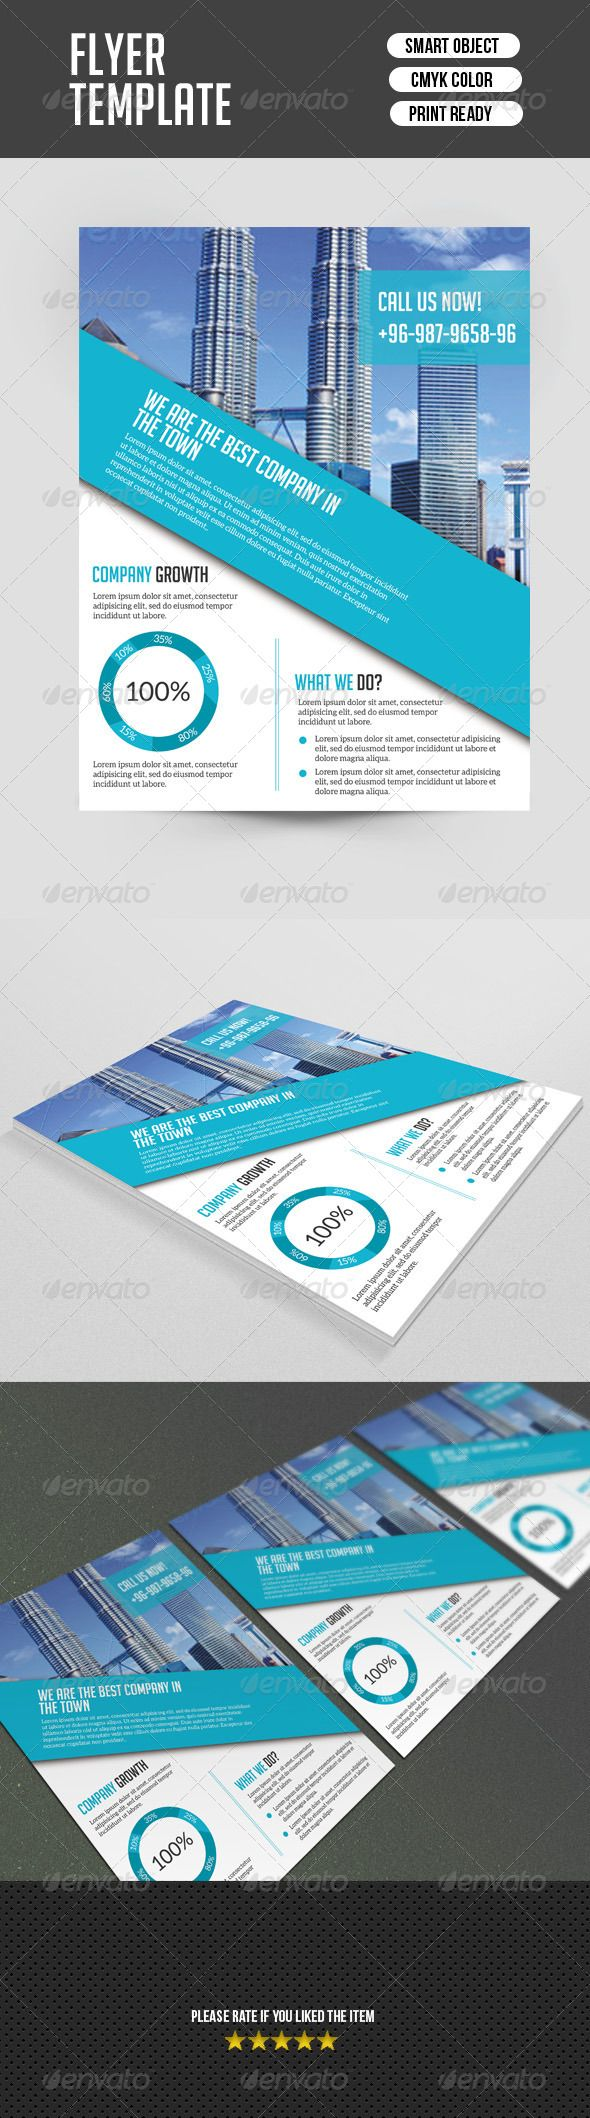 27 best business flyer templates images on pinterest business corporate flyer template cheaphphosting Images